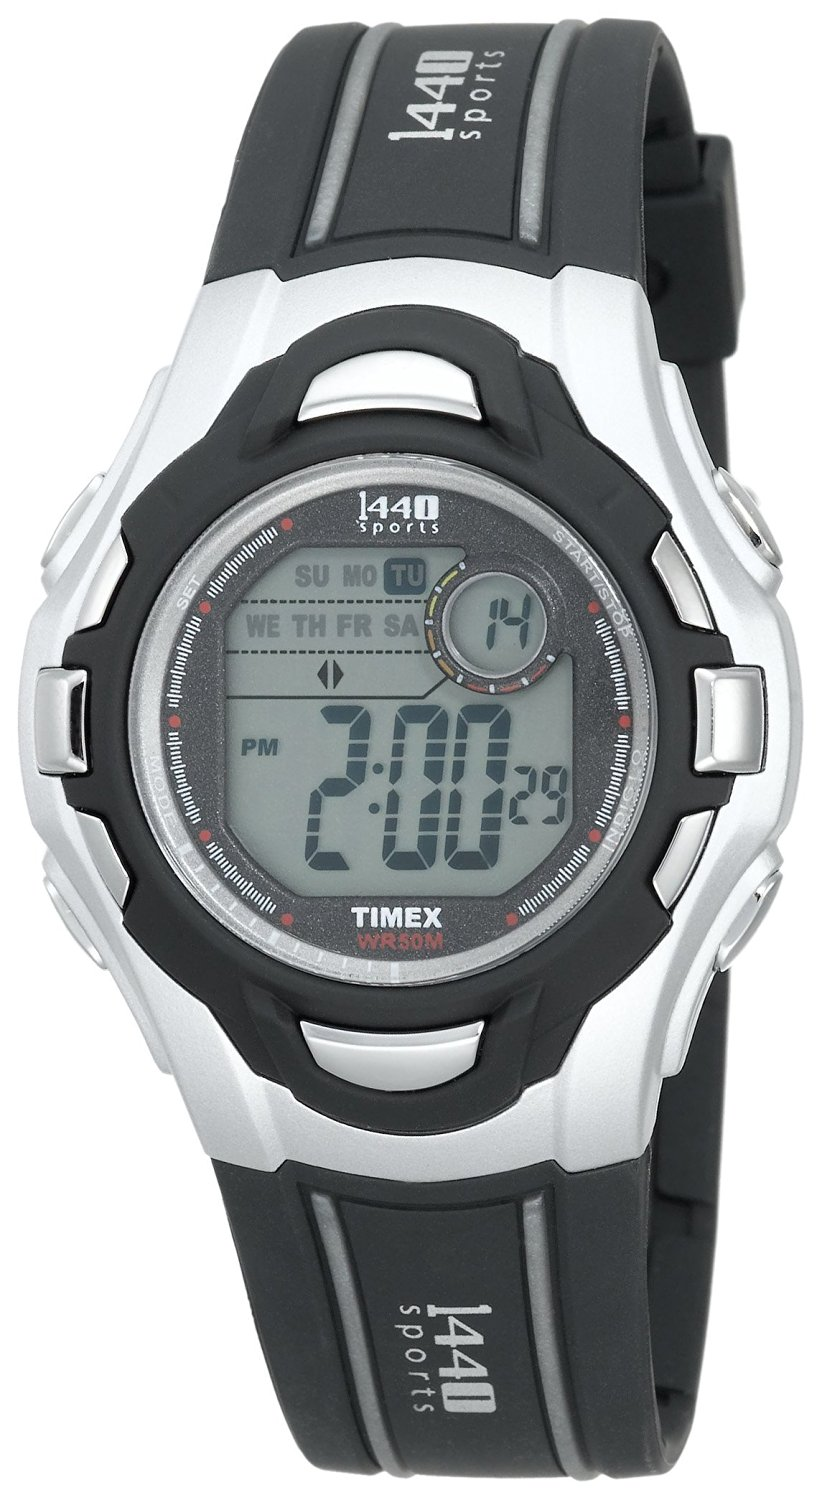 Cheap Timex Sports Watch Instructions Find Timex Sports Watch